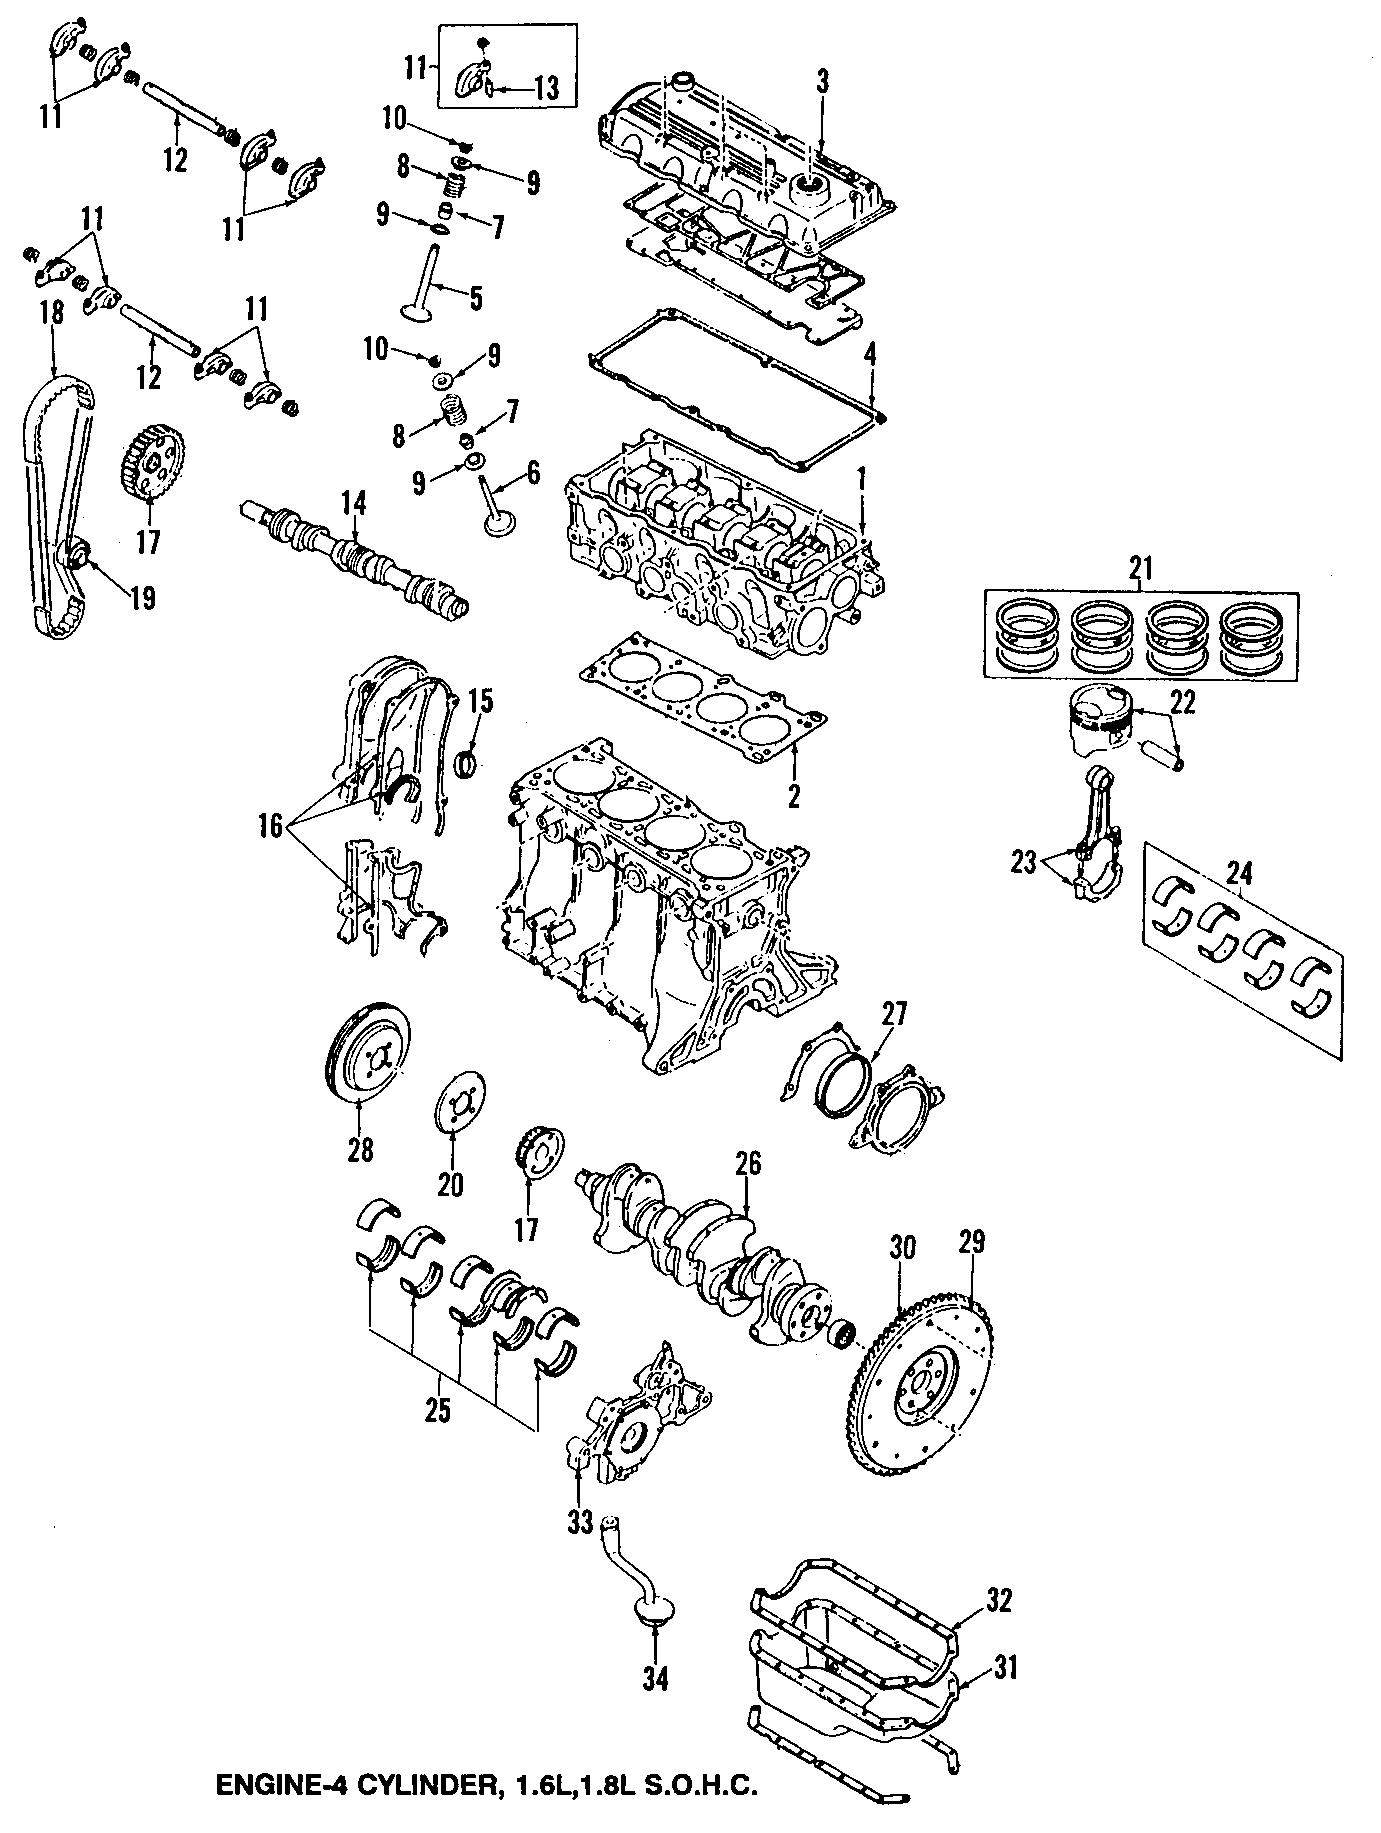 Mazda Protege Engine Diagram Valves. Mazda. Auto Wiring